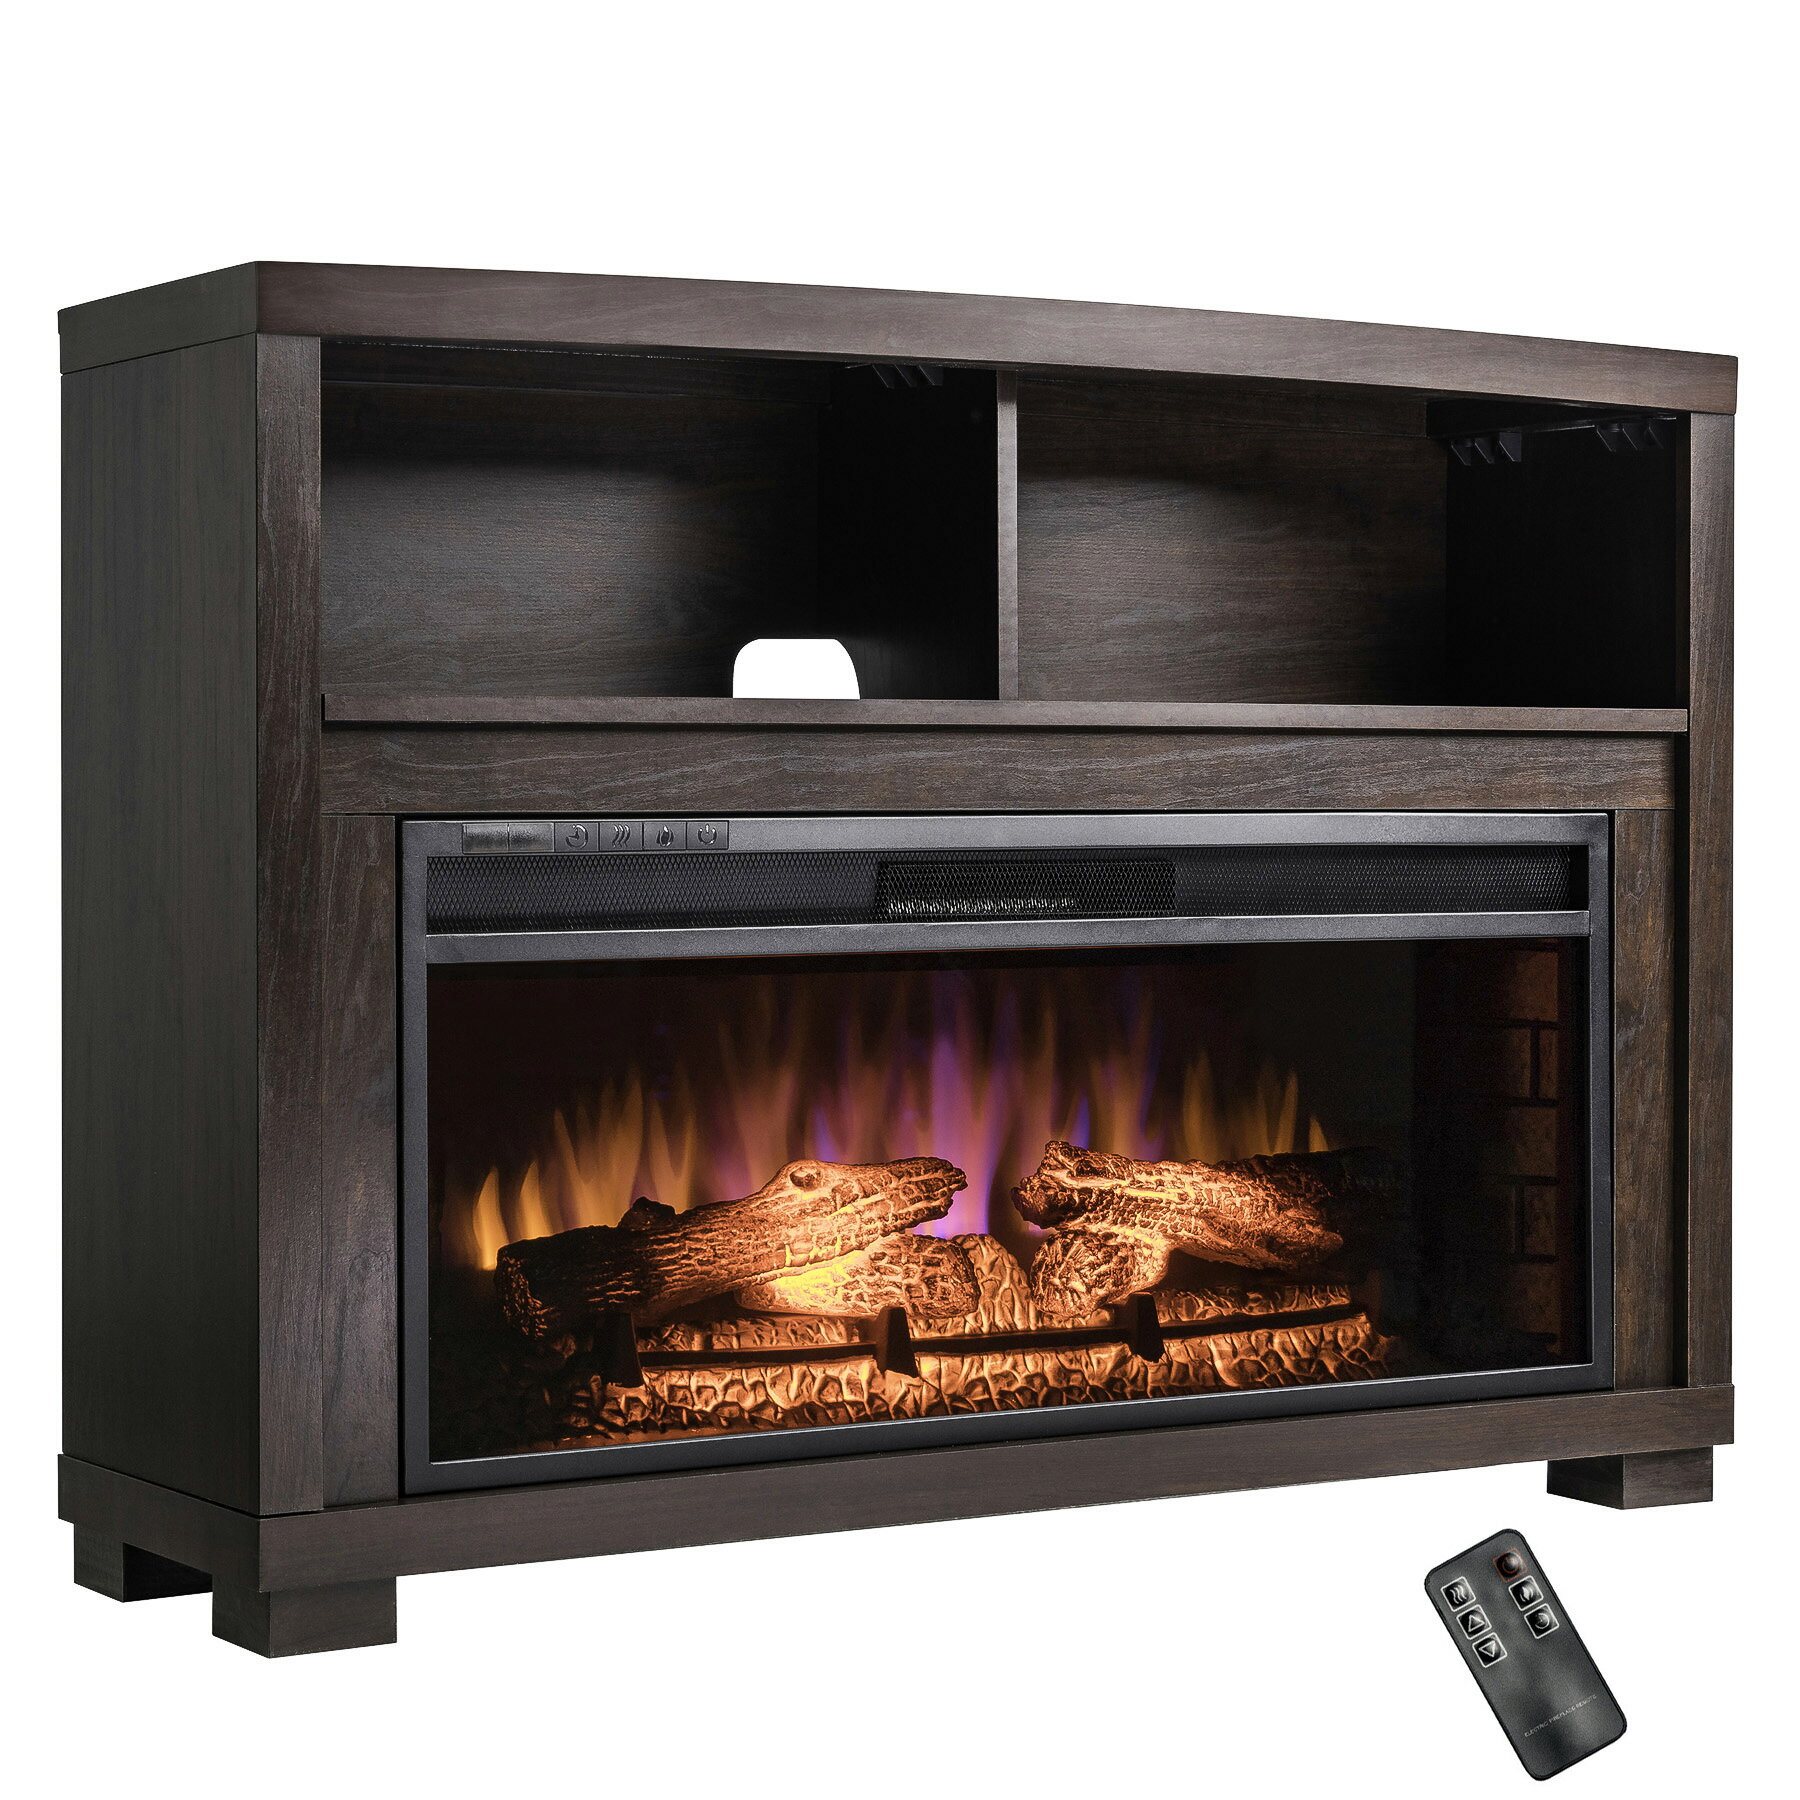 "AKDY 44"" Freestanding Insert Wooden Mantel 3D Flame Black Fireplace Heater Stove w/ Remote 2"